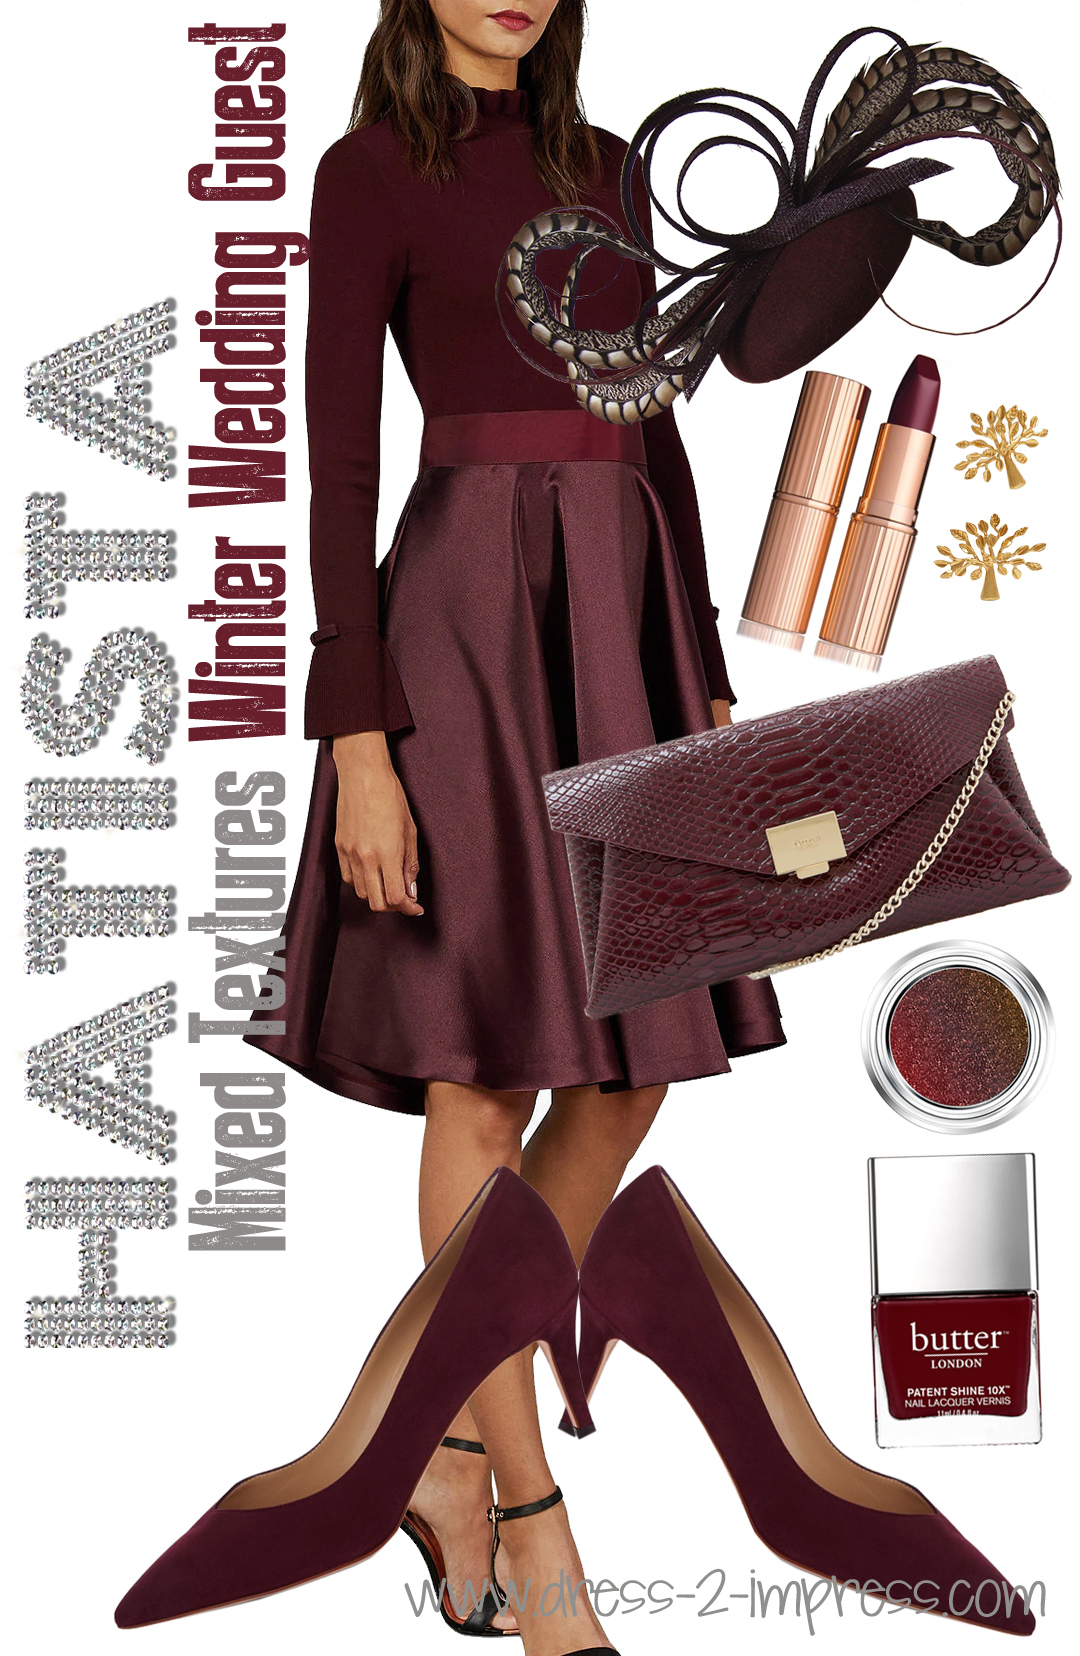 How to dress for a Winter Wedding. Burgundy Winter Outfits. What to wear to a Winter Wedding 2021. Winter Wedding Guests outfits. How to dress for a winter wedding. How to wear Burgundy Red. What to wear with Burgundy 2021. What colours go with Burgundy.